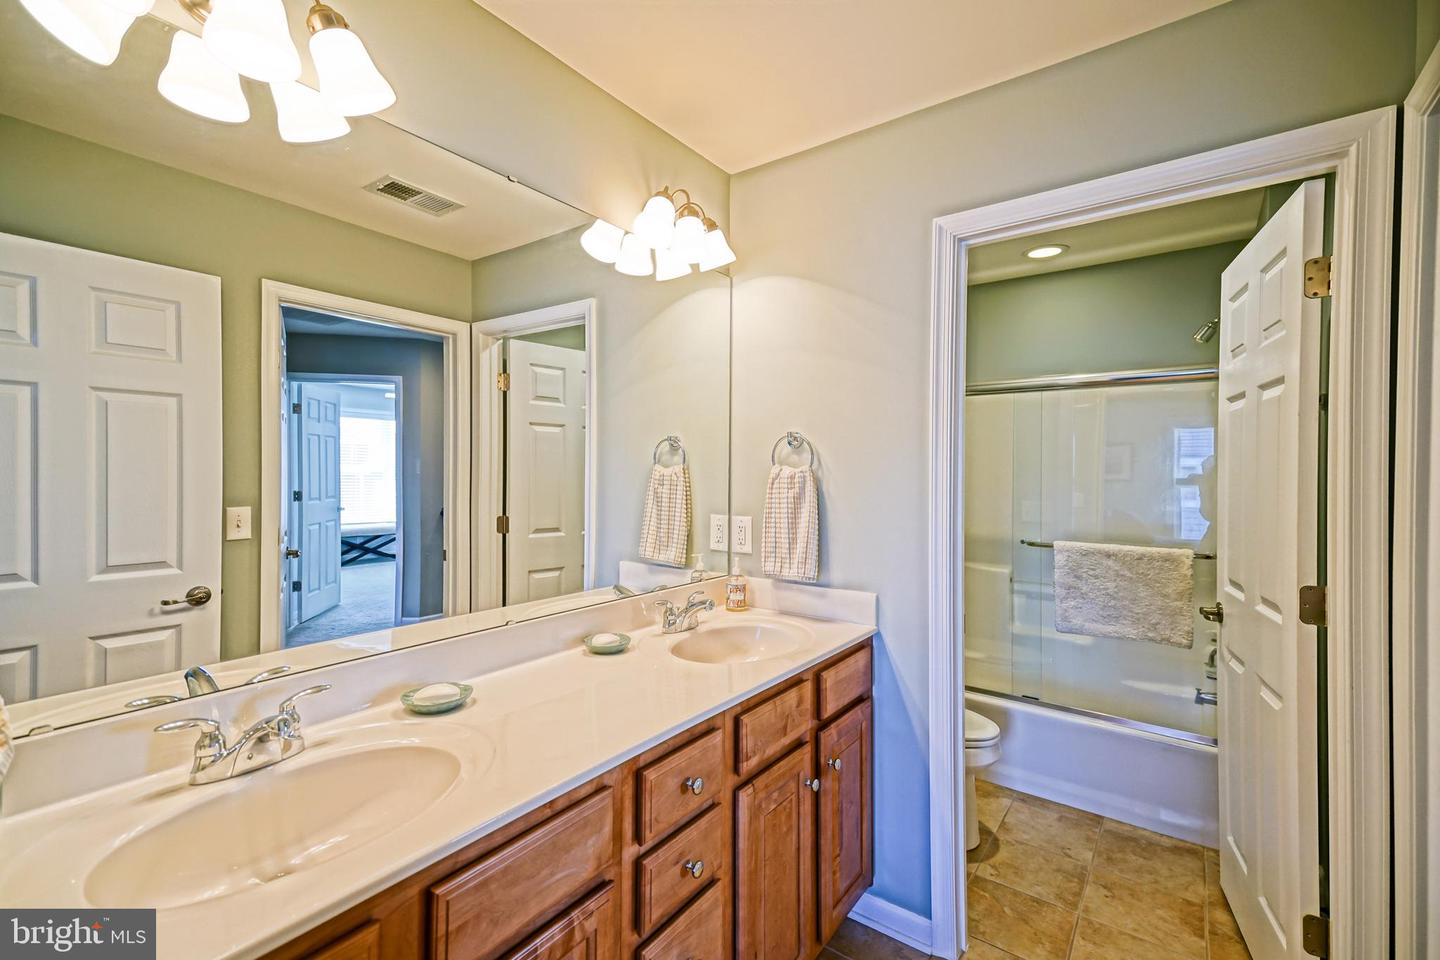 DESU139128-301667382881-2019-08-05-10-43-56 35222 Overfalls Dr N | Lewes, DE Real Estate For Sale | MLS# Desu139128  - Lee Ann Group